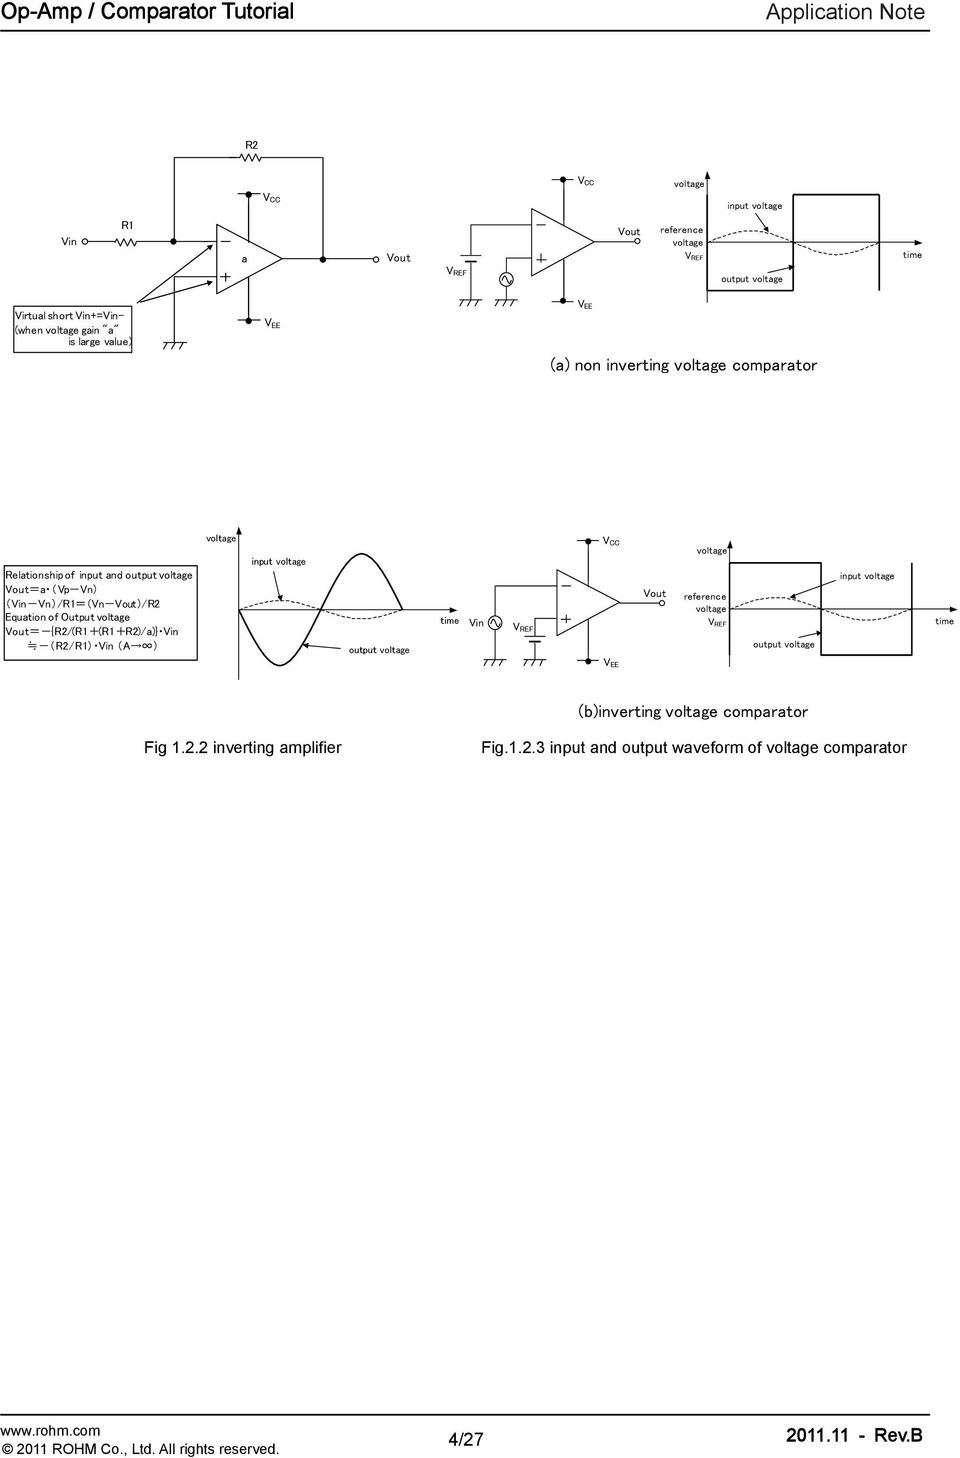 Operational Amplifiers Comparators Application Note Op Amp Shown To Use Lm324 Voltage Comparator Composed Of A Test Circuit It R2 R1